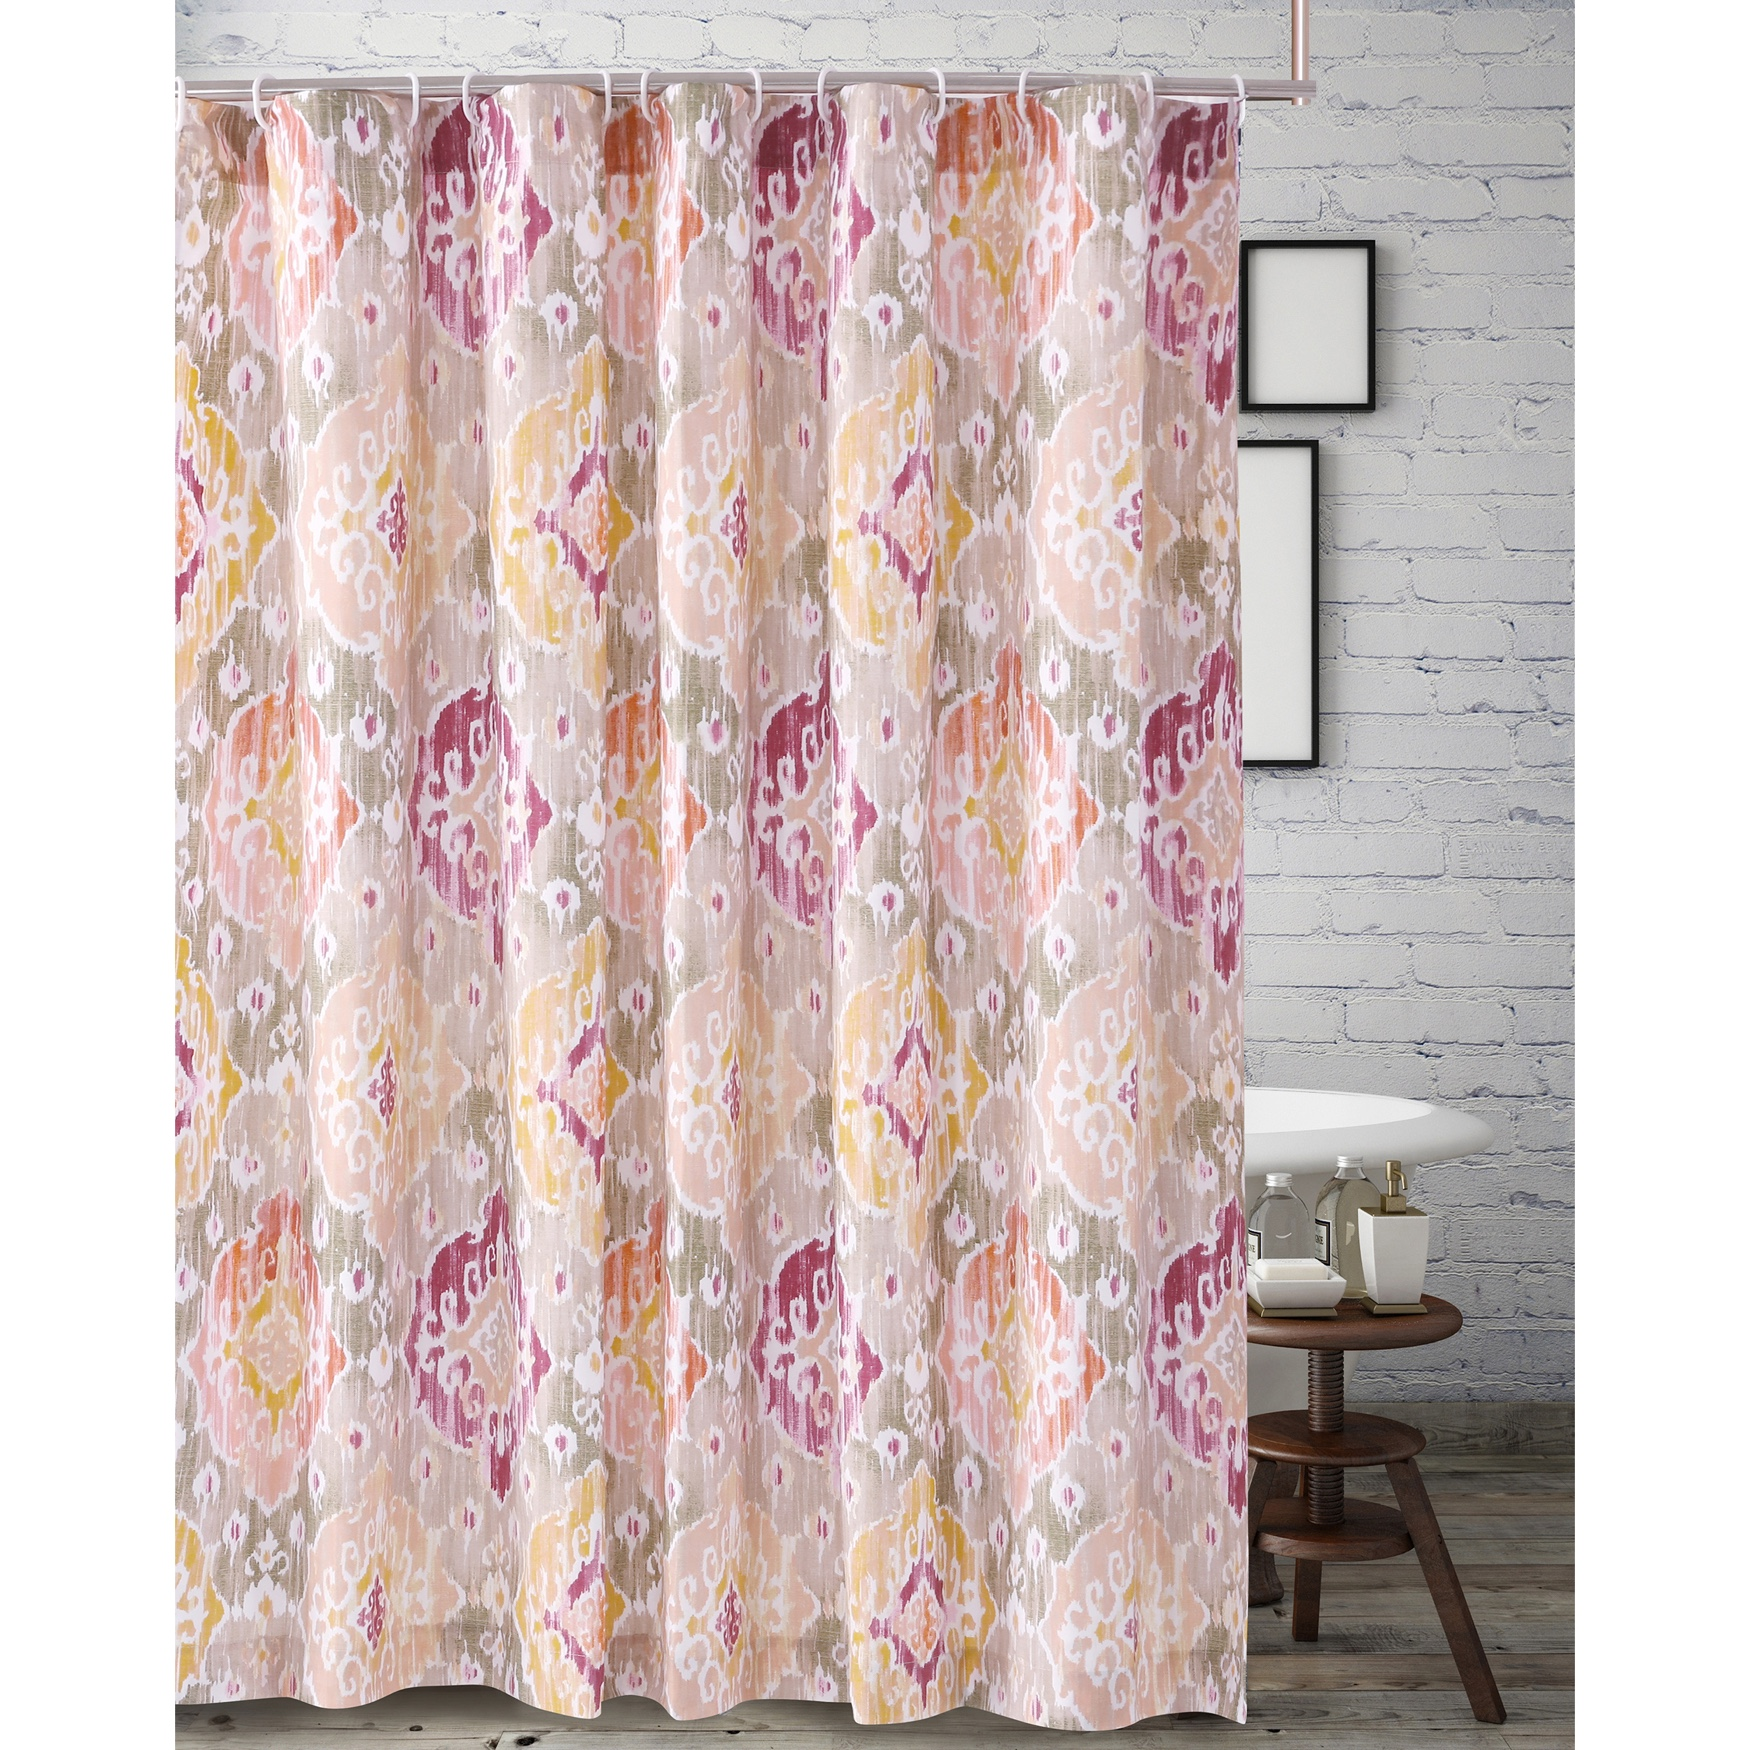 Ibiza Shower Curtain by Barefoot Bungalow, MULTI